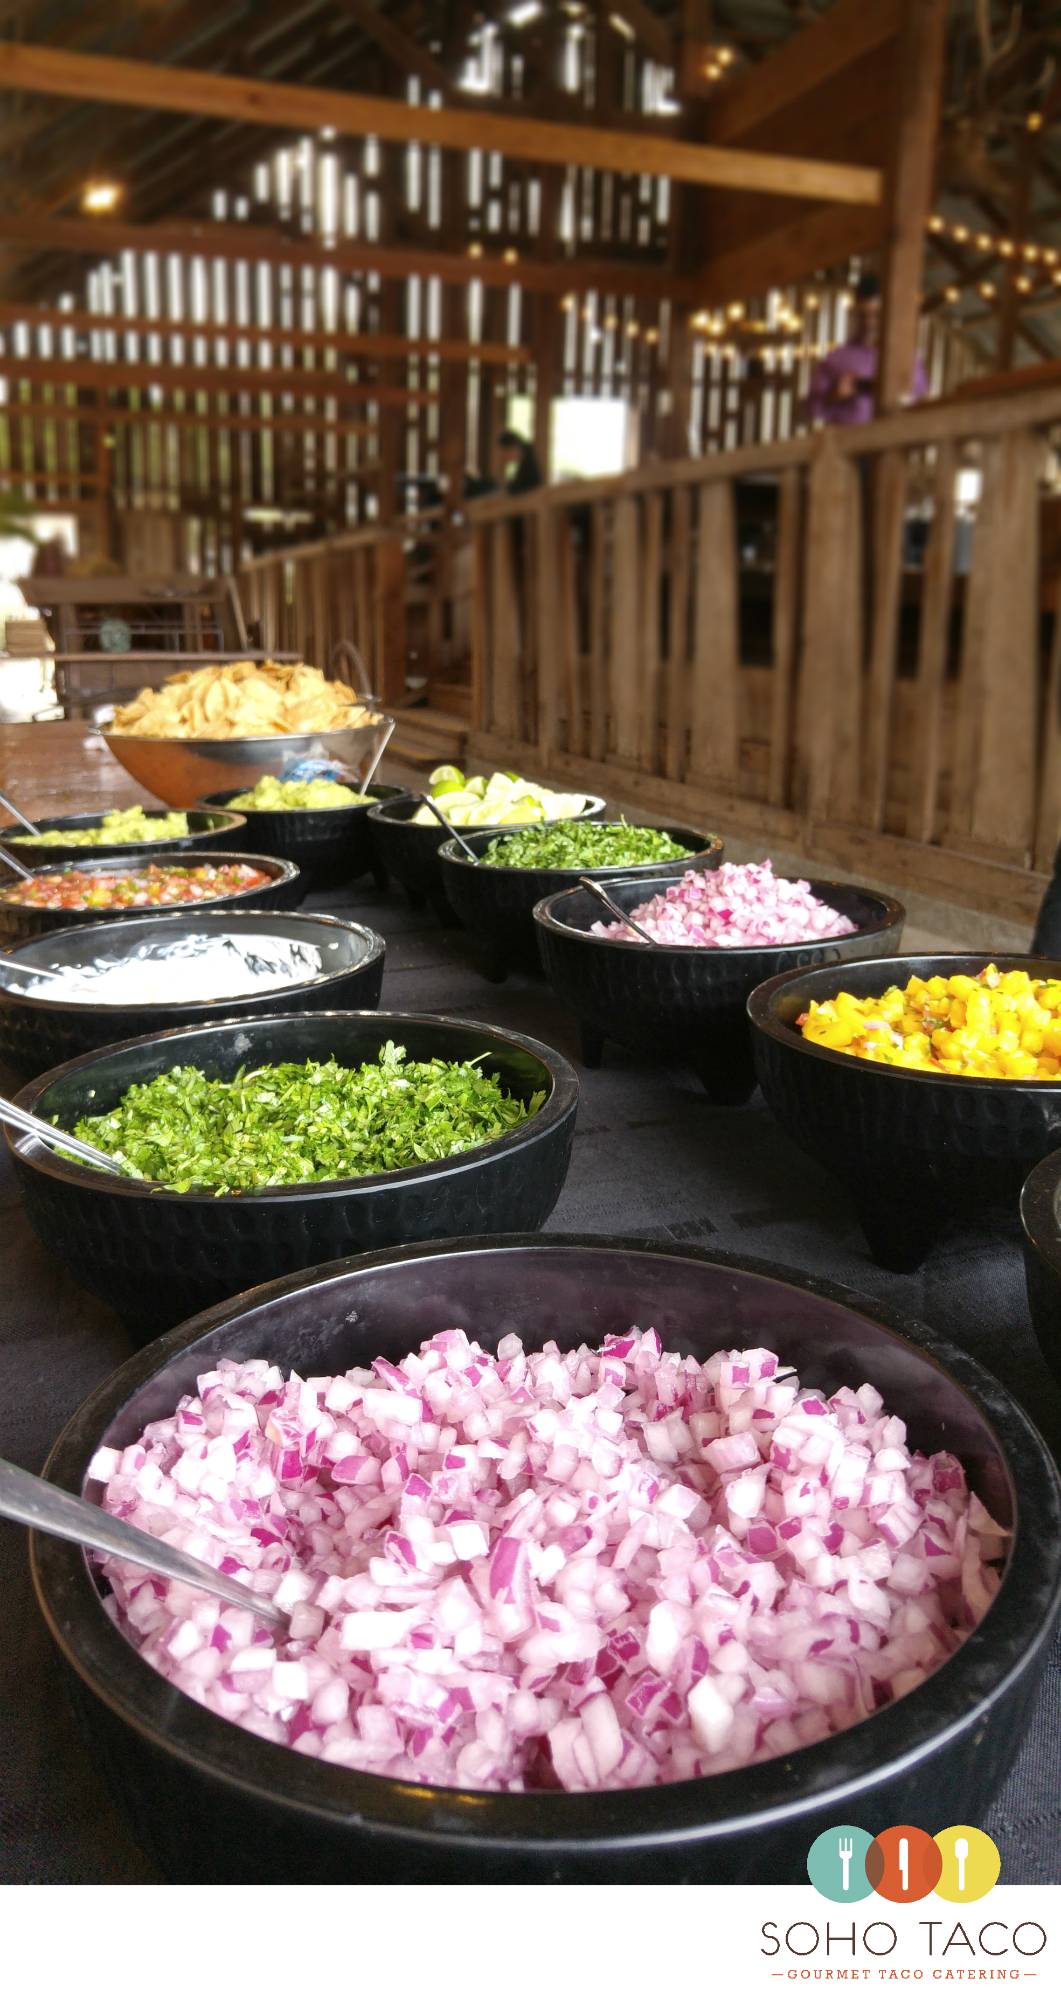 Soho Taco Gourmet Catering San Luis Obispo Wedding Spreafico Farms Condiments